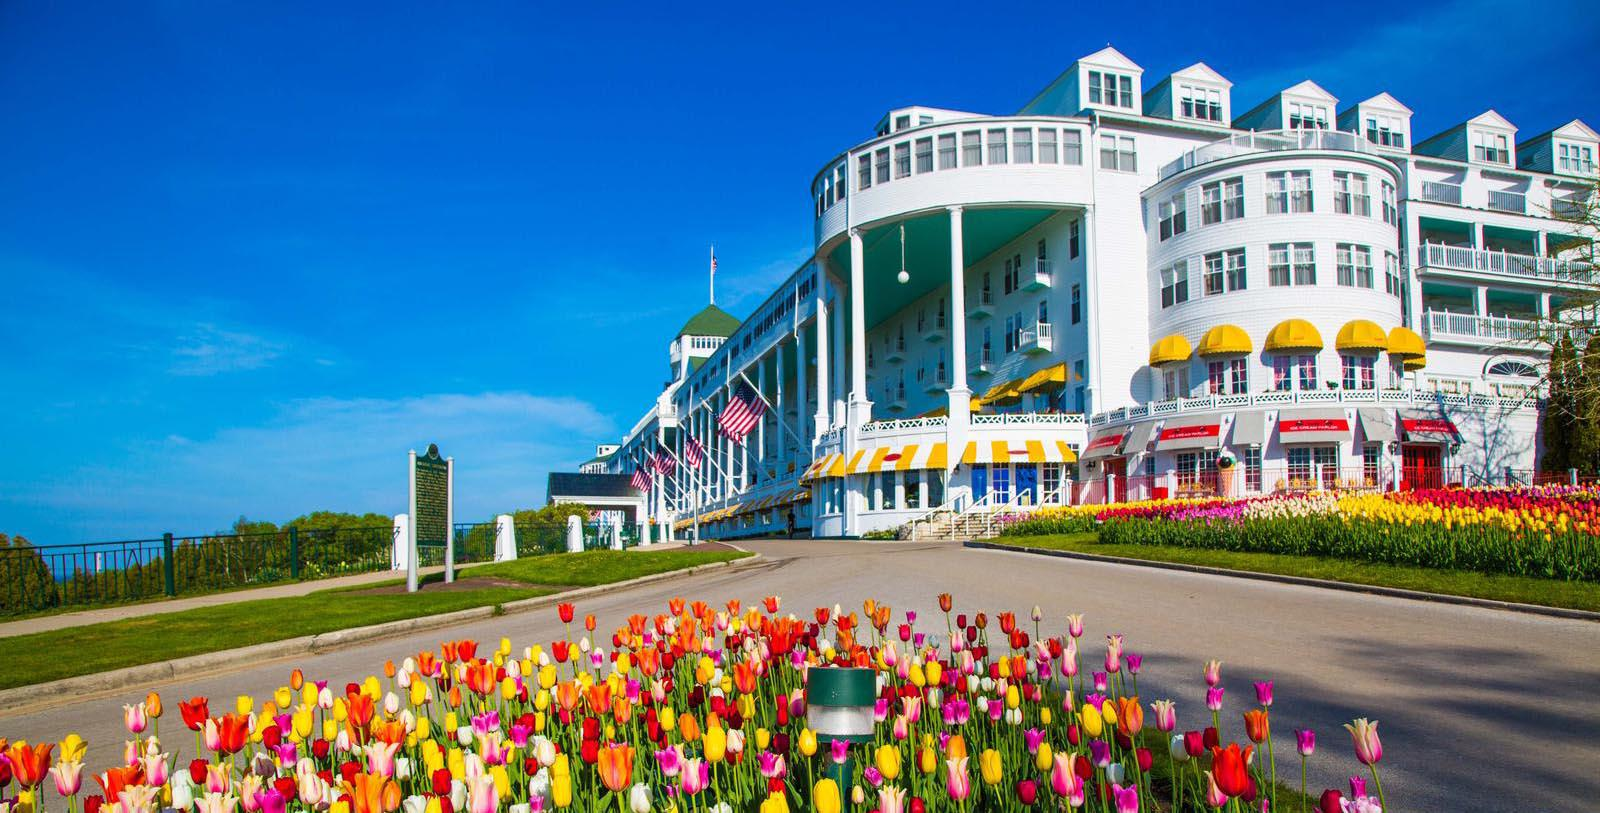 Image of hotel exterior at Grand Hotel, 1887, Member of Historic Hotels of America, in Mackinac Island, Michigan, Overview